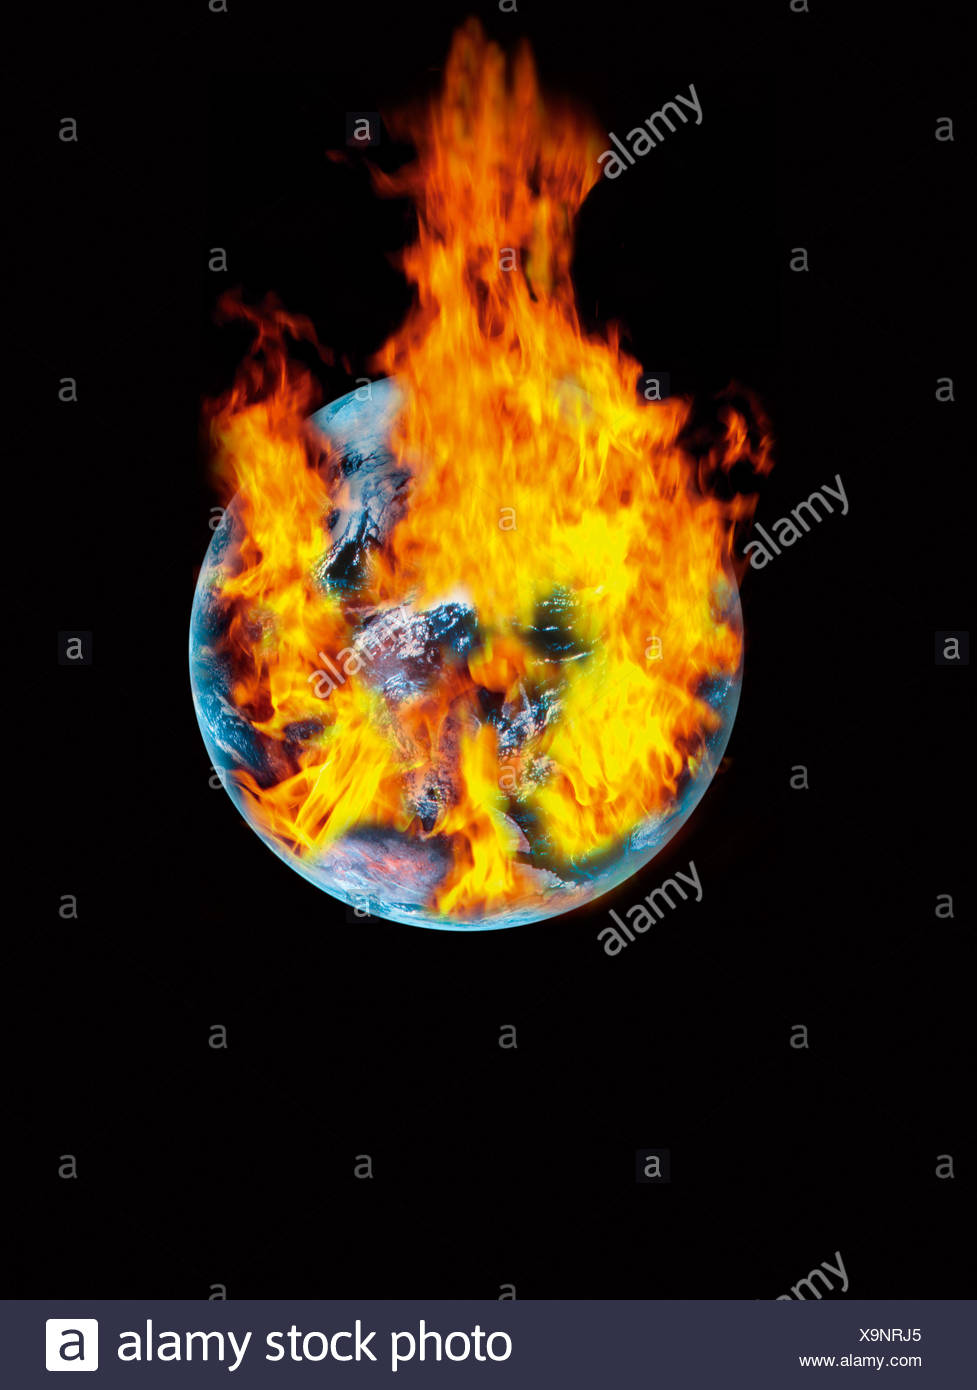 Earth with burning fire against black background - Stock Image